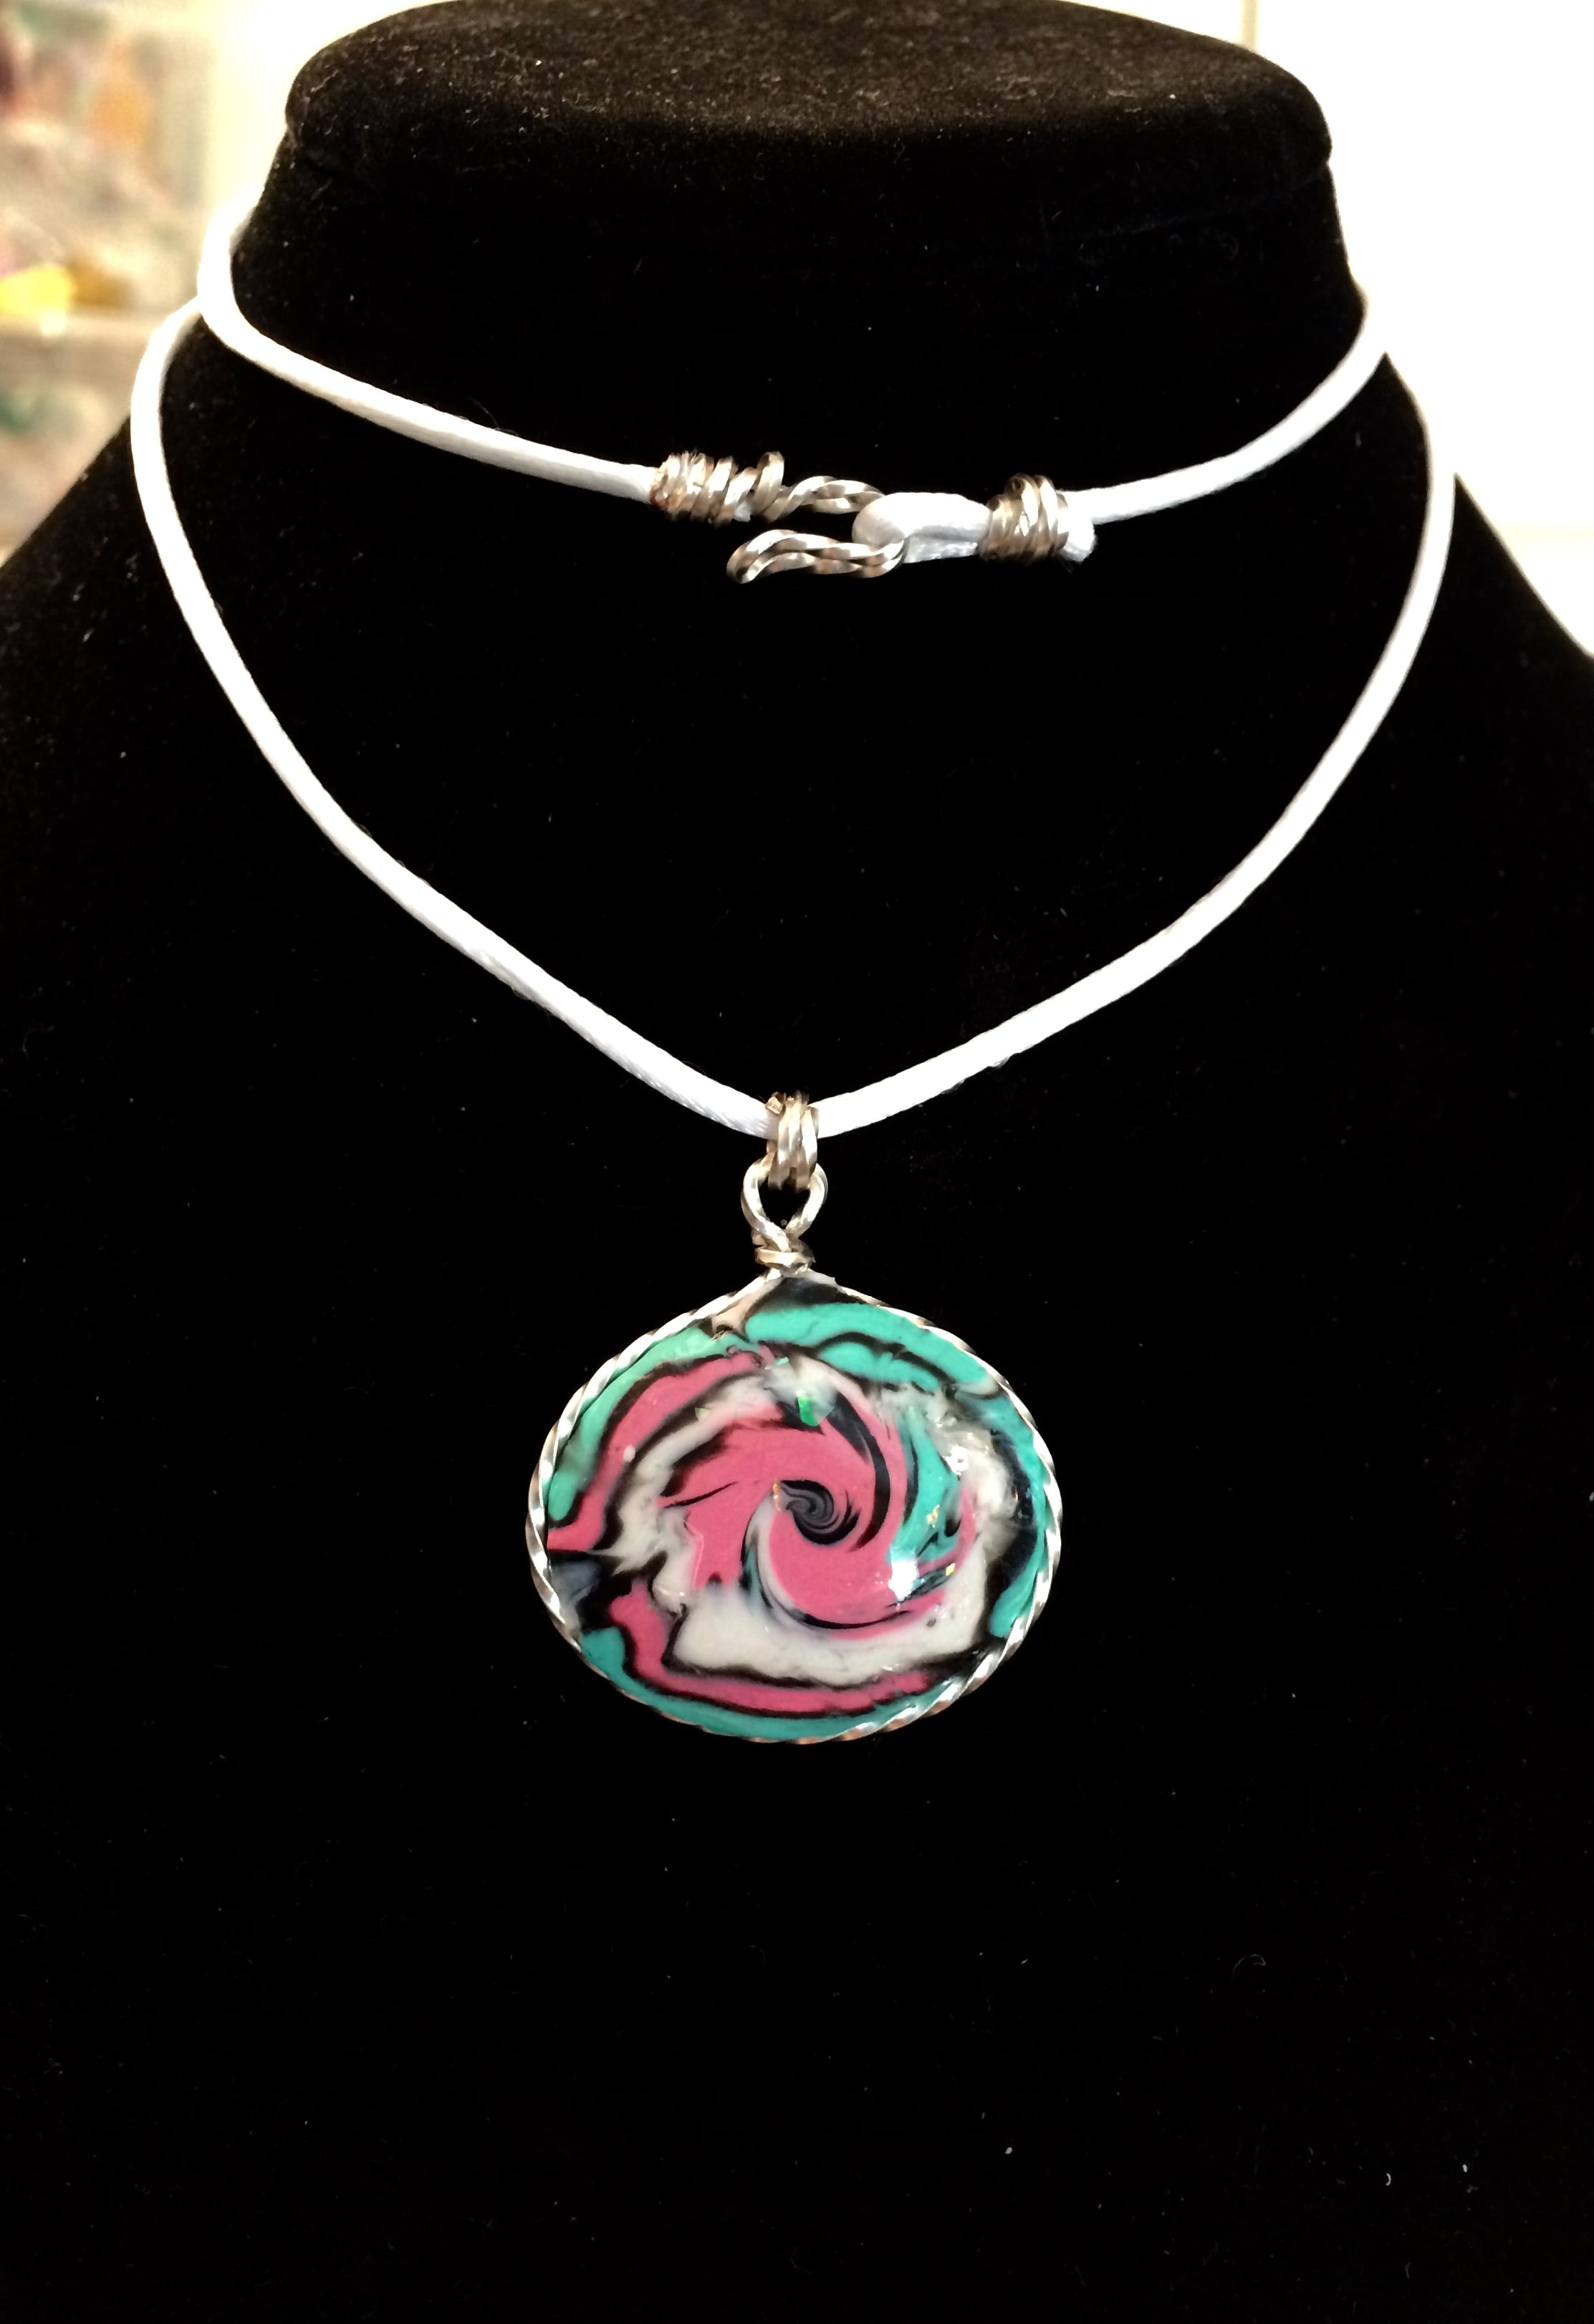 Pink, White, and Blue Swirled Necklace